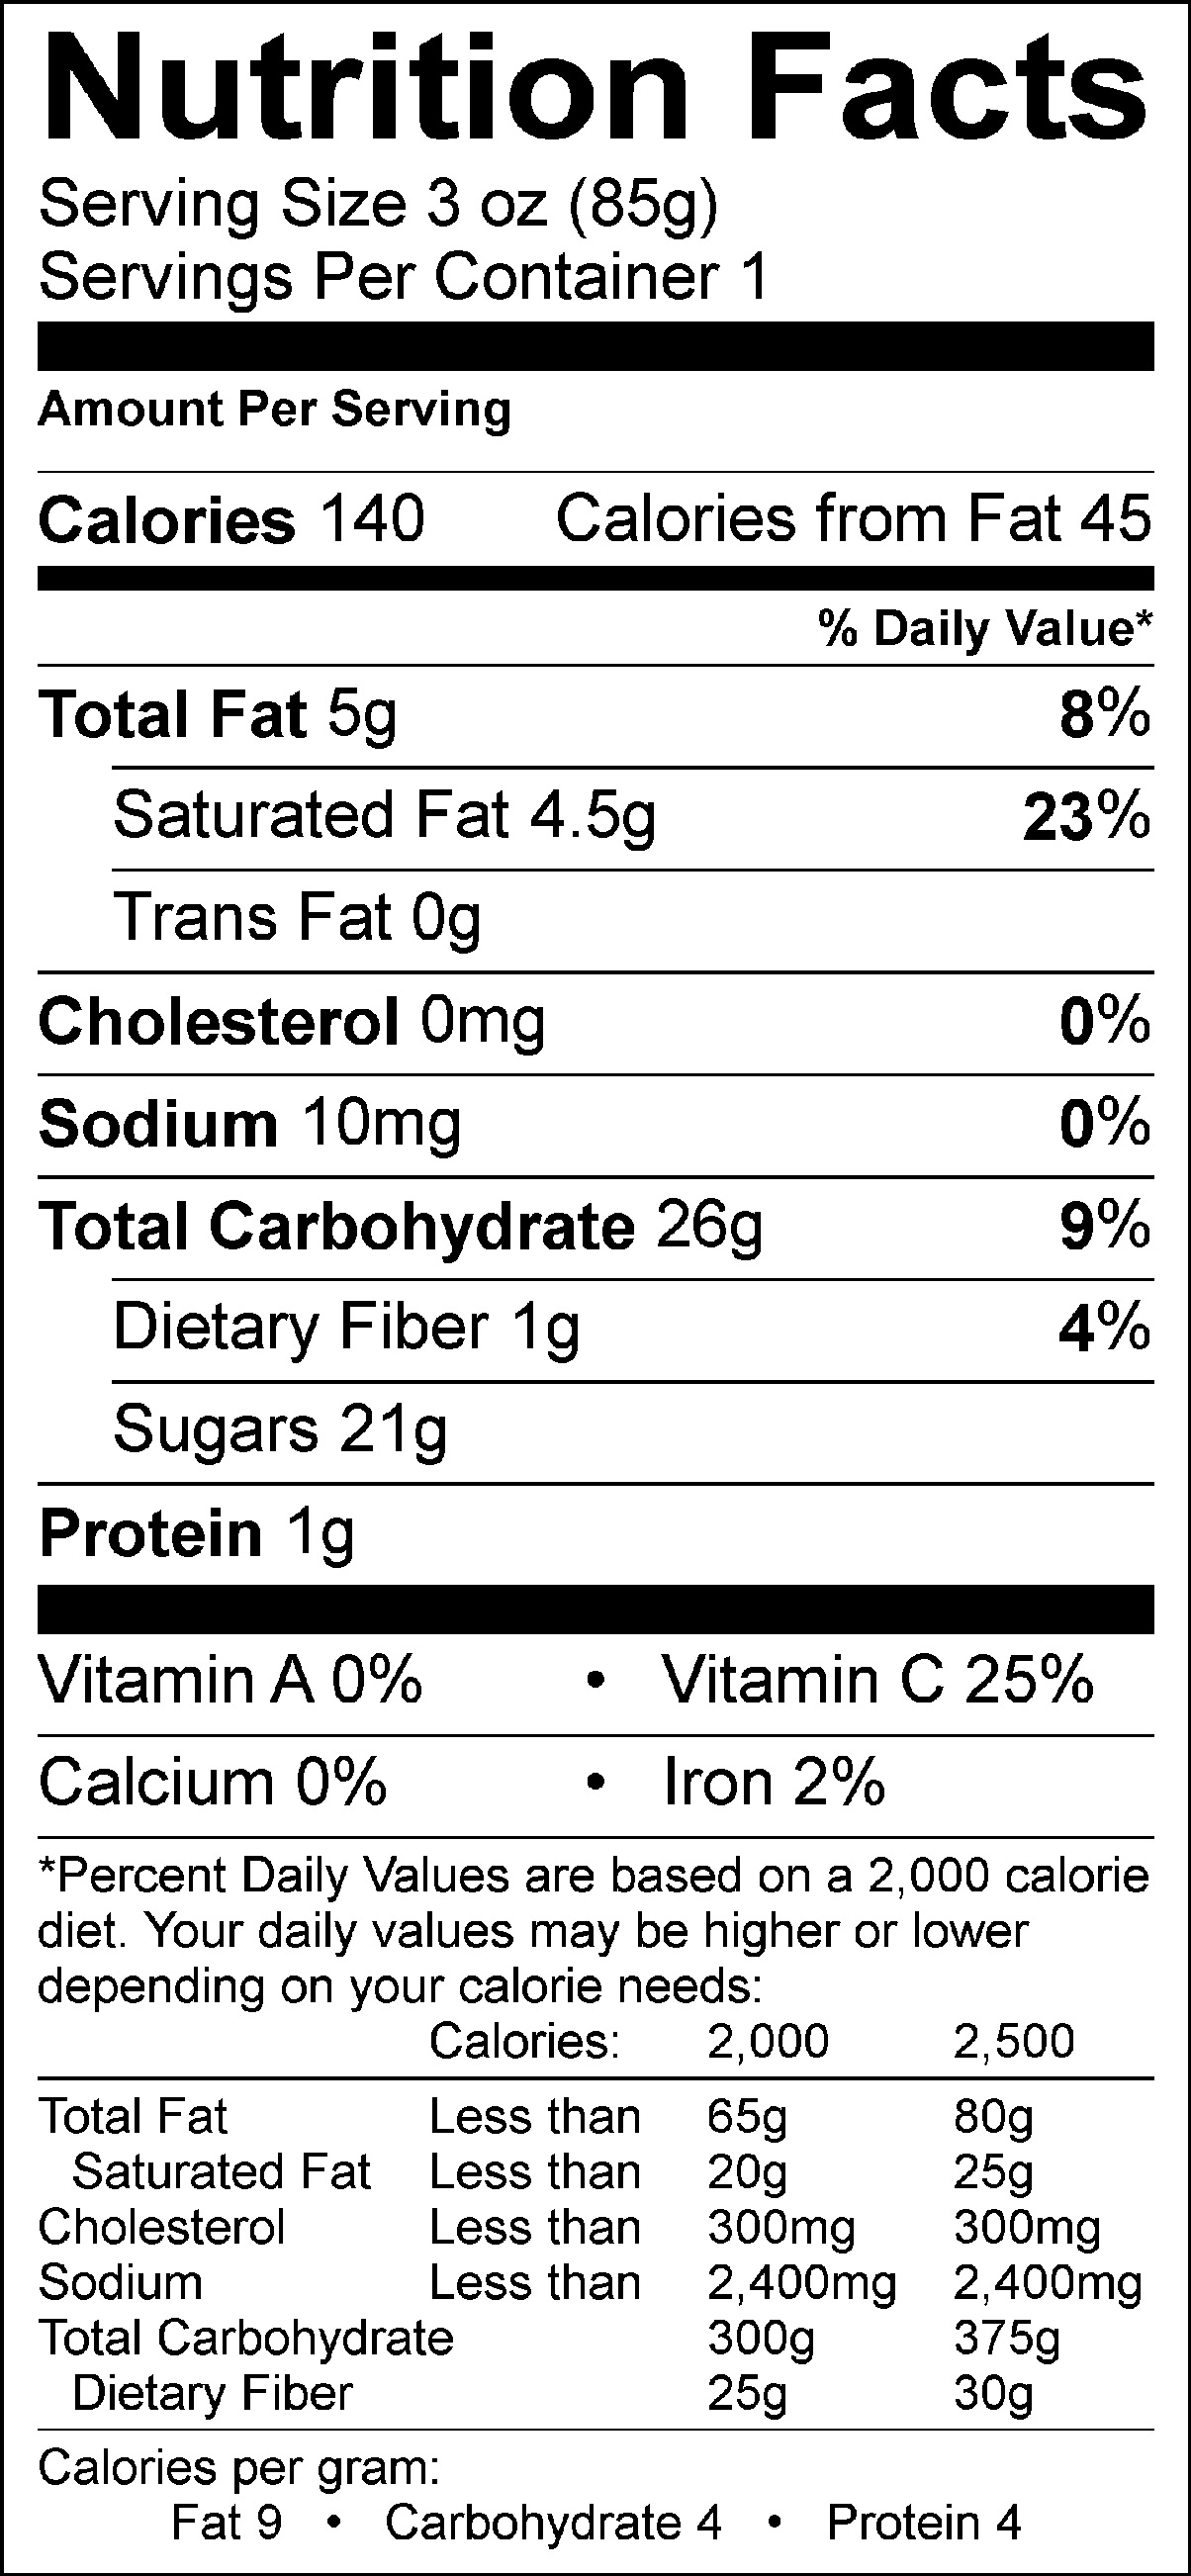 Coconut Pineapple Banana Nutrition Facts